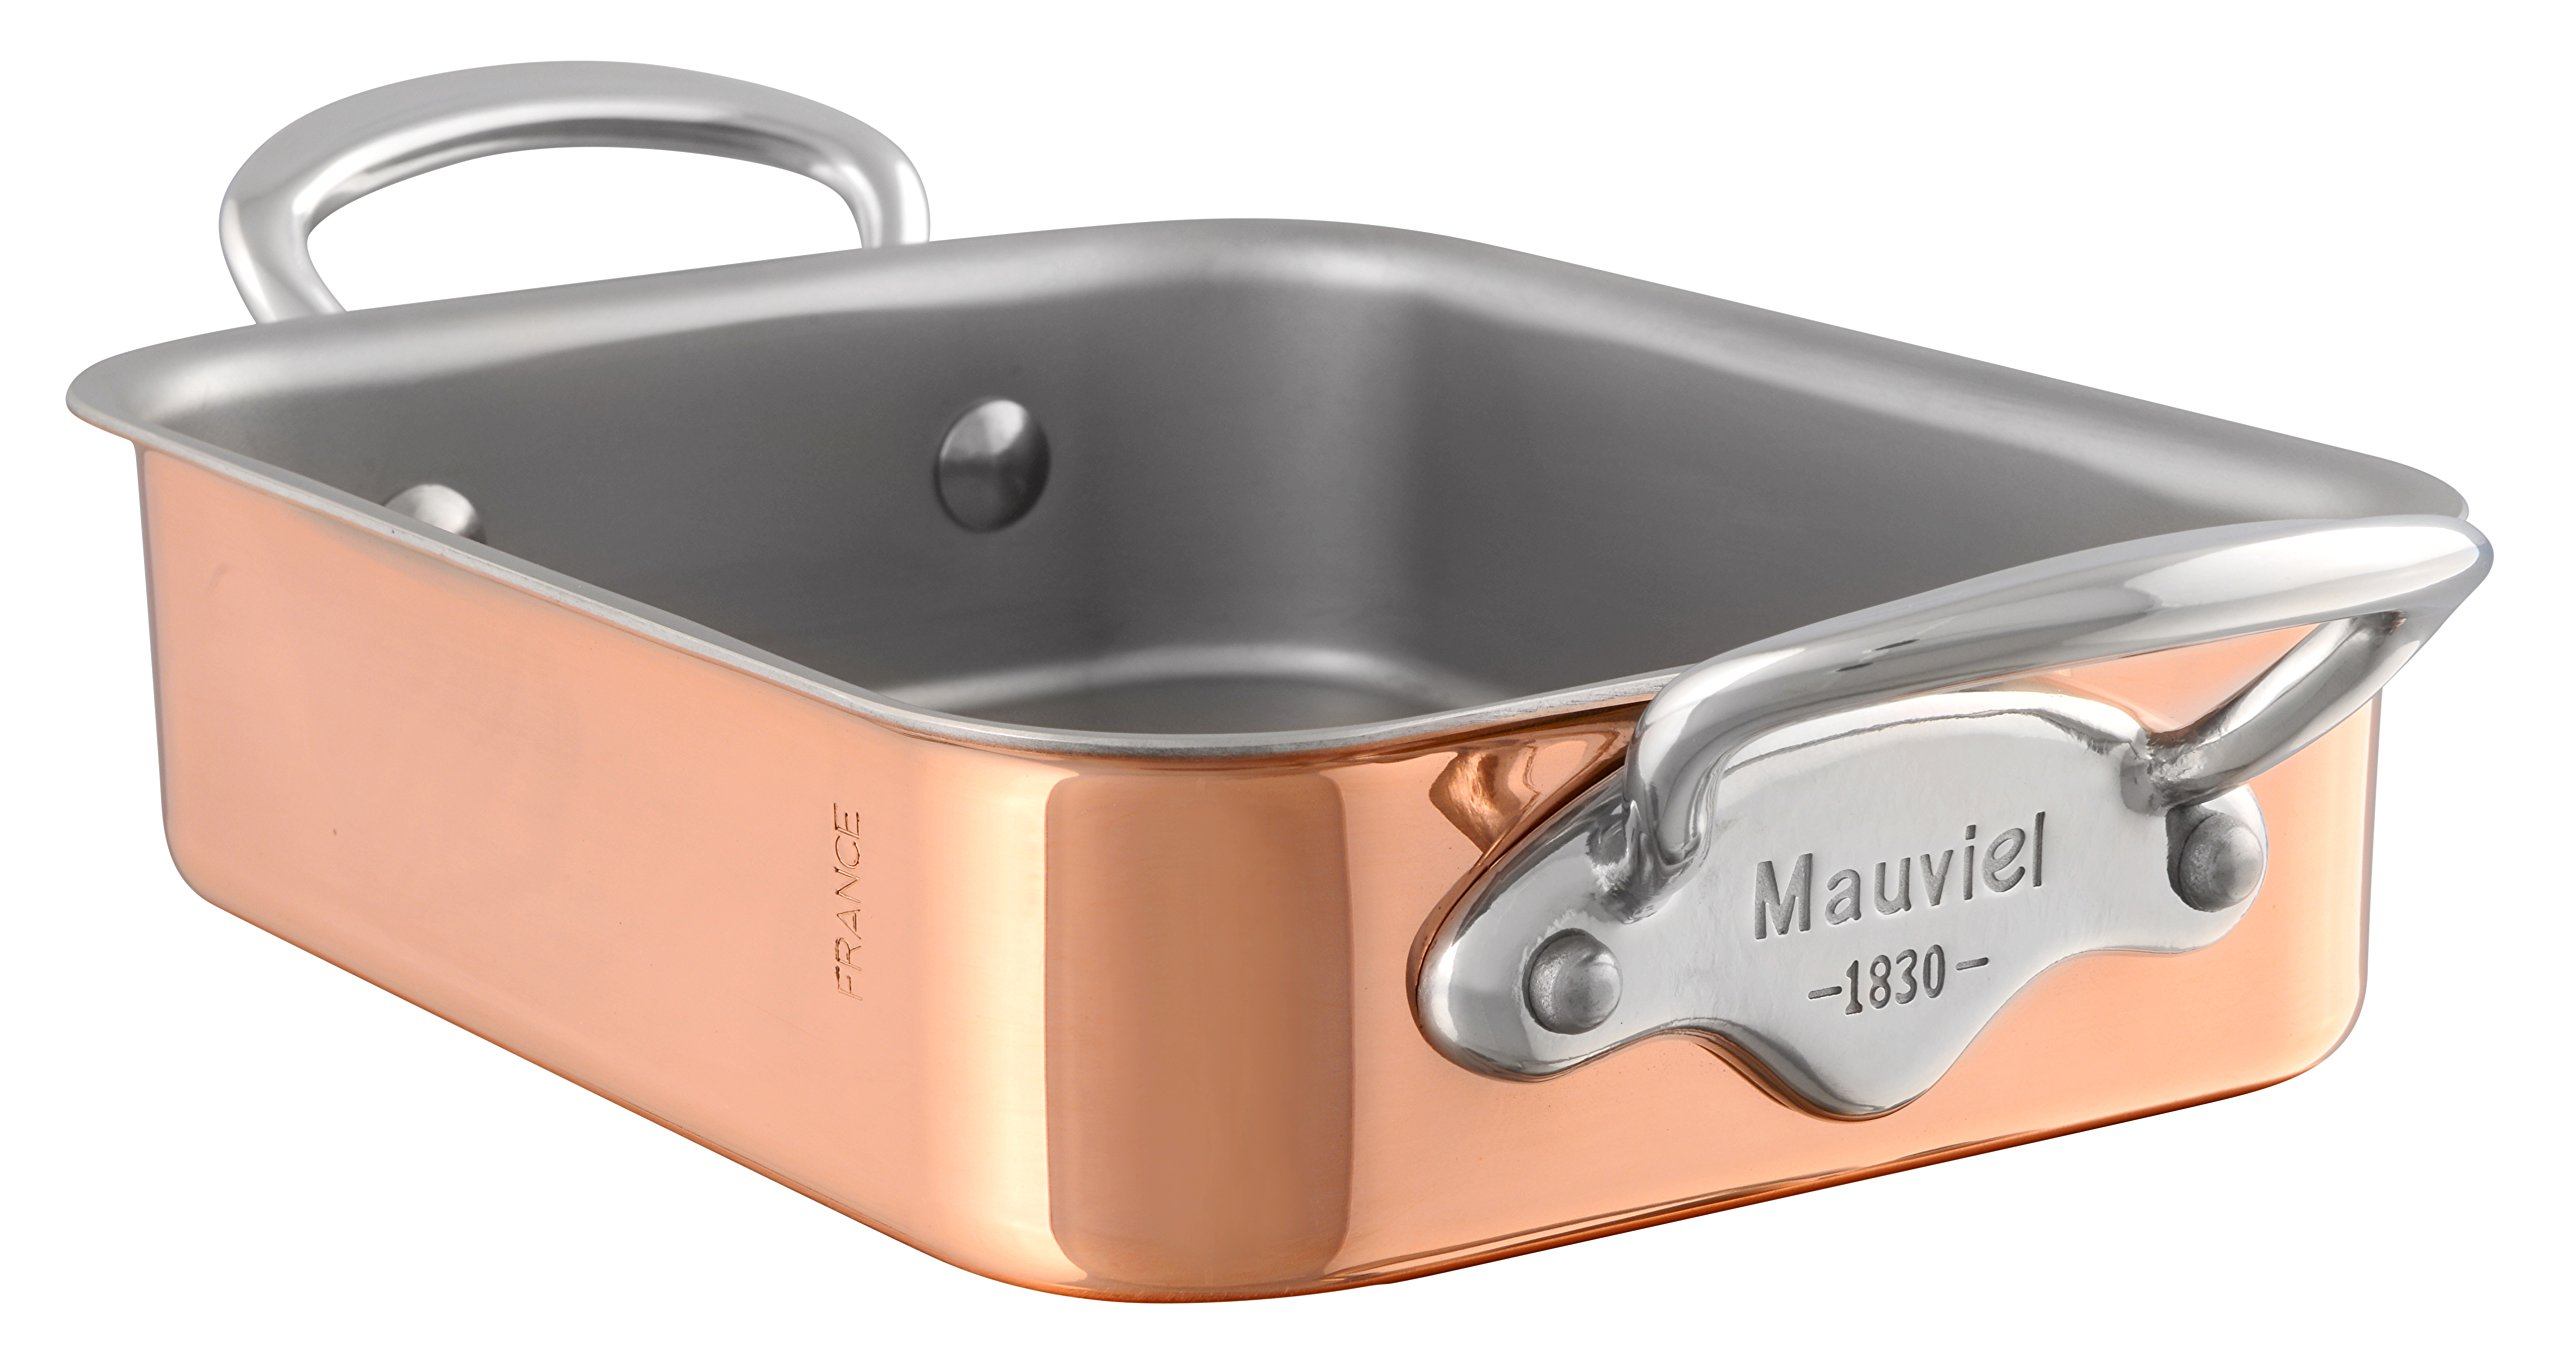 Mauviel M'Mini Rectangular Roasting Pan - Copper